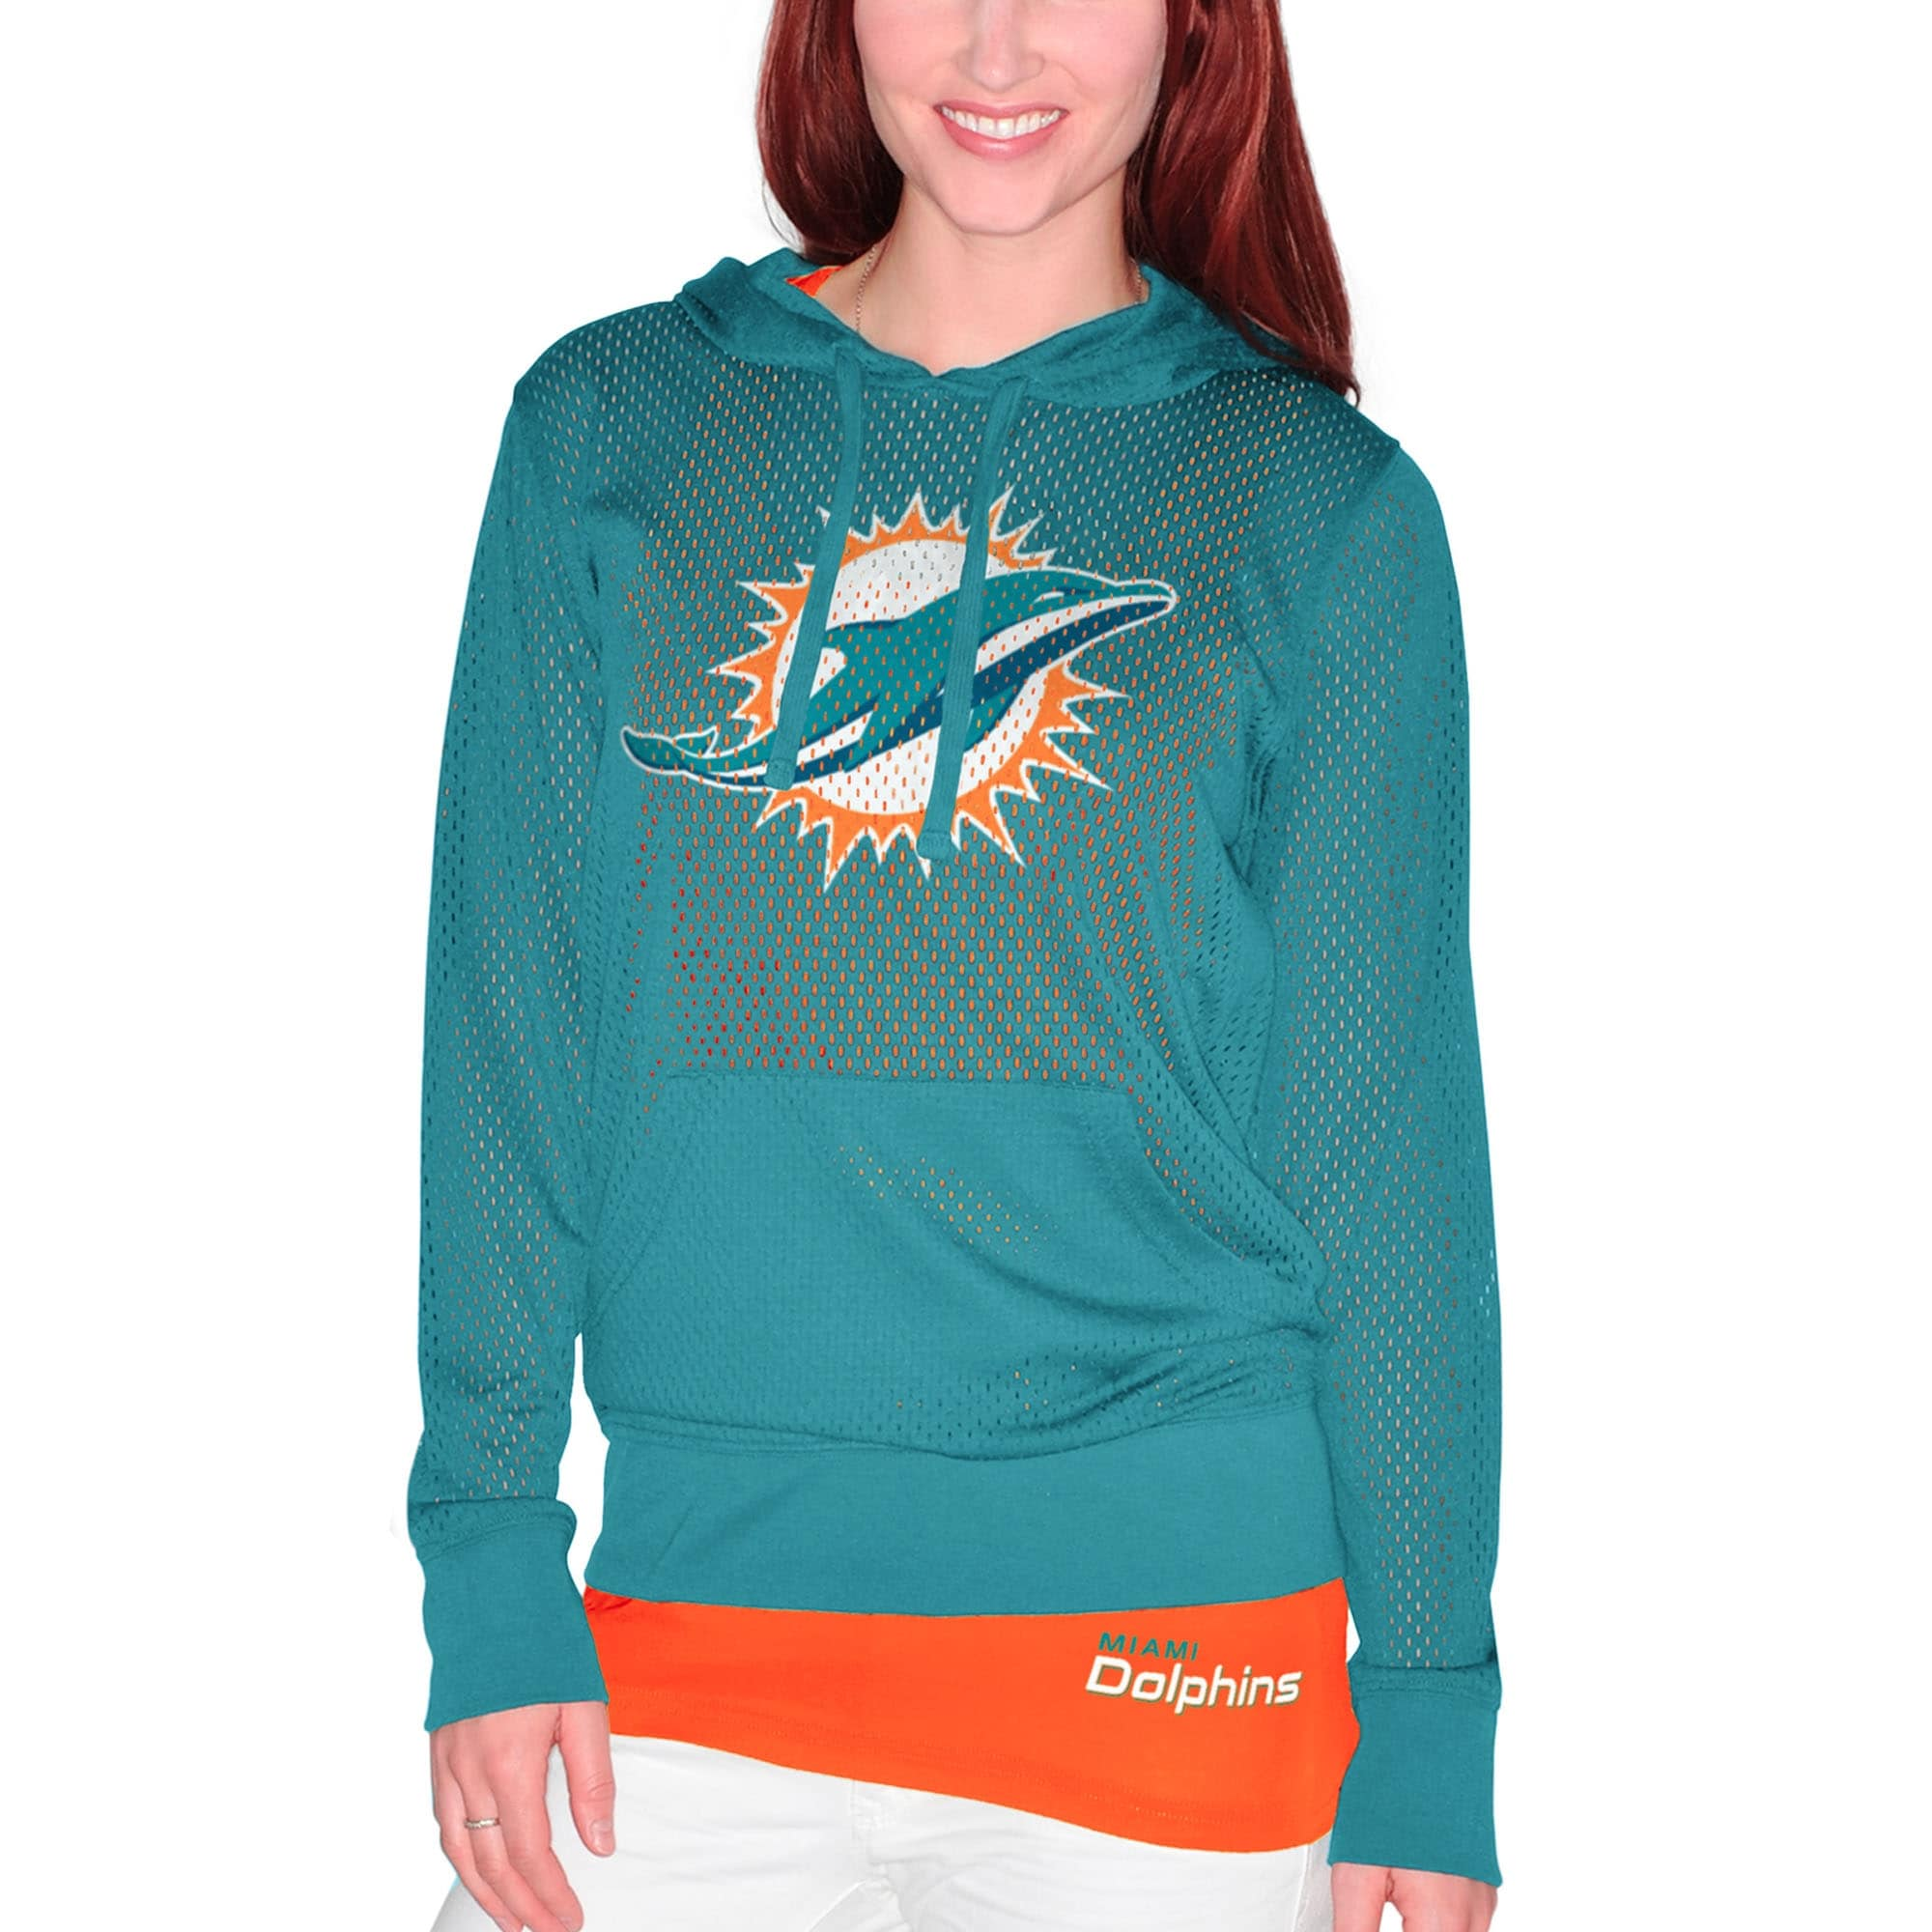 Miami Dolphins Women's Holey Hoodie T-Shirt & Tank Top Set - Aqua